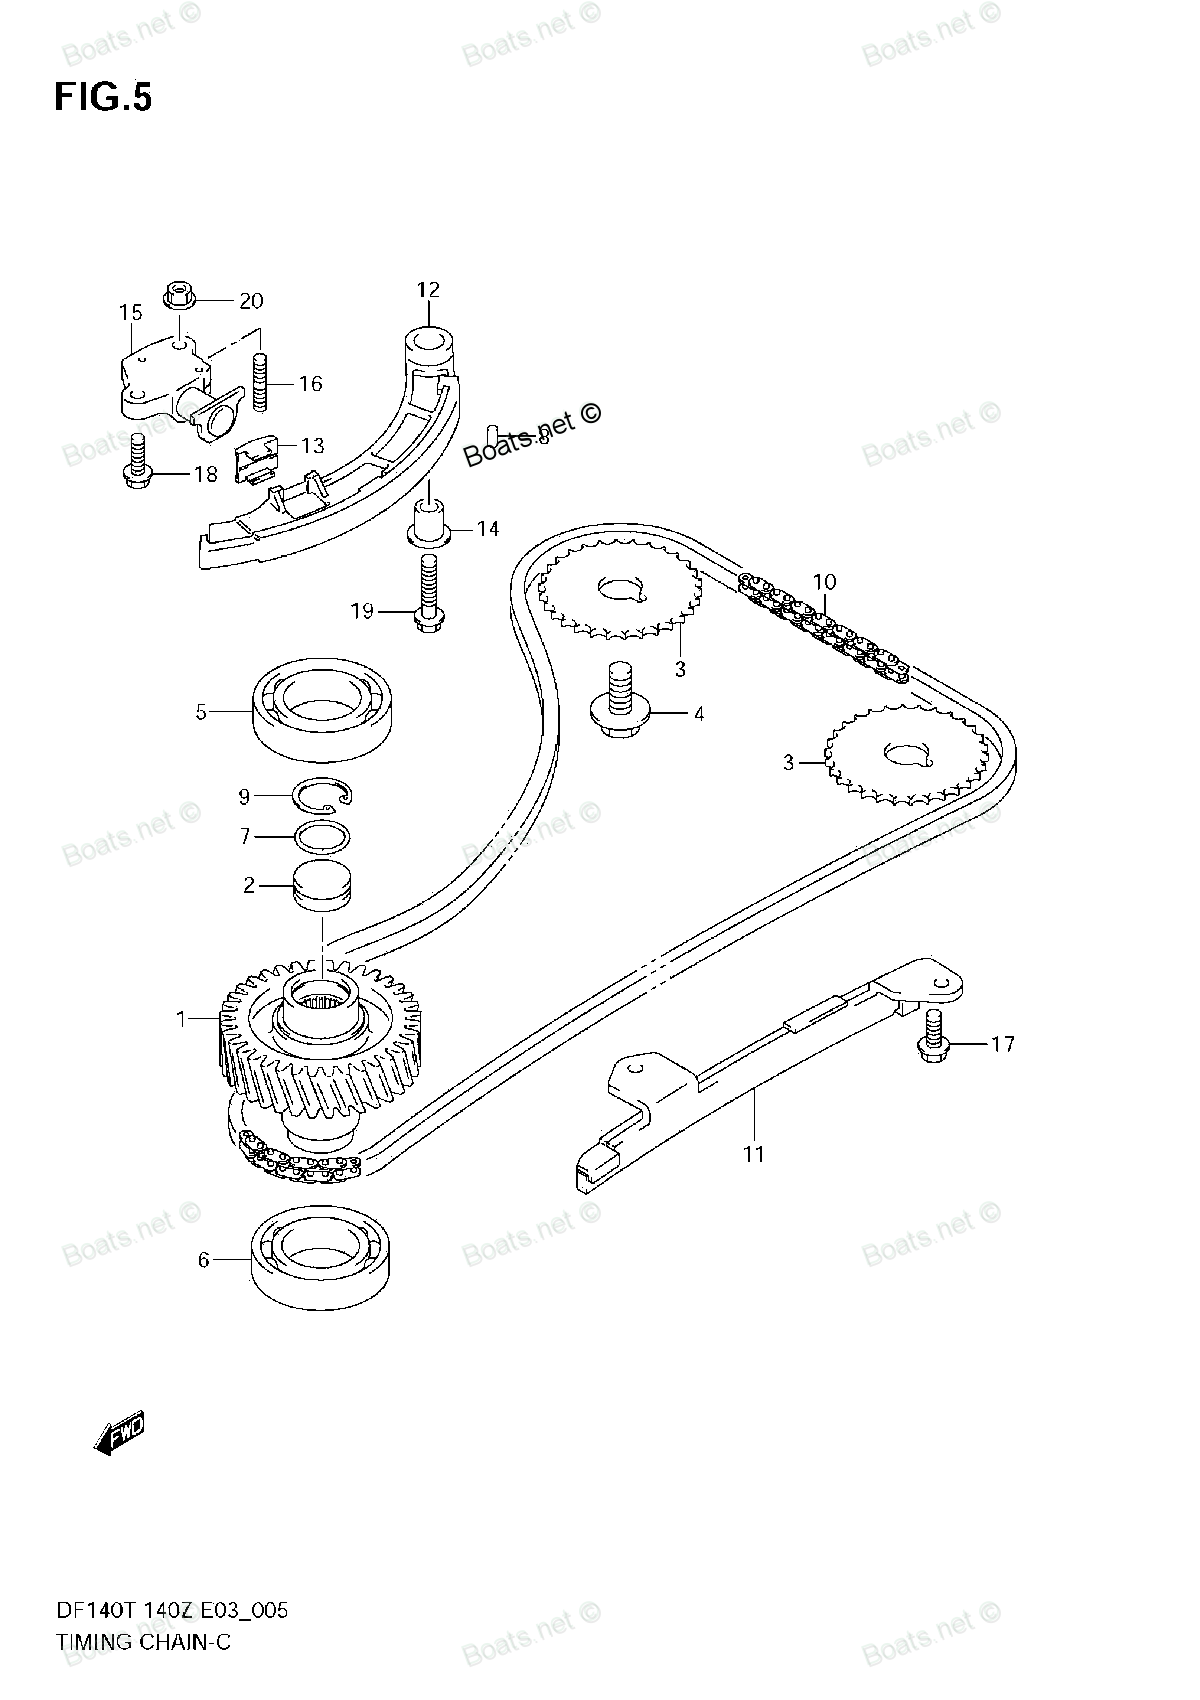 hight resolution of 2003 ford taurus engine diagram of timing chain